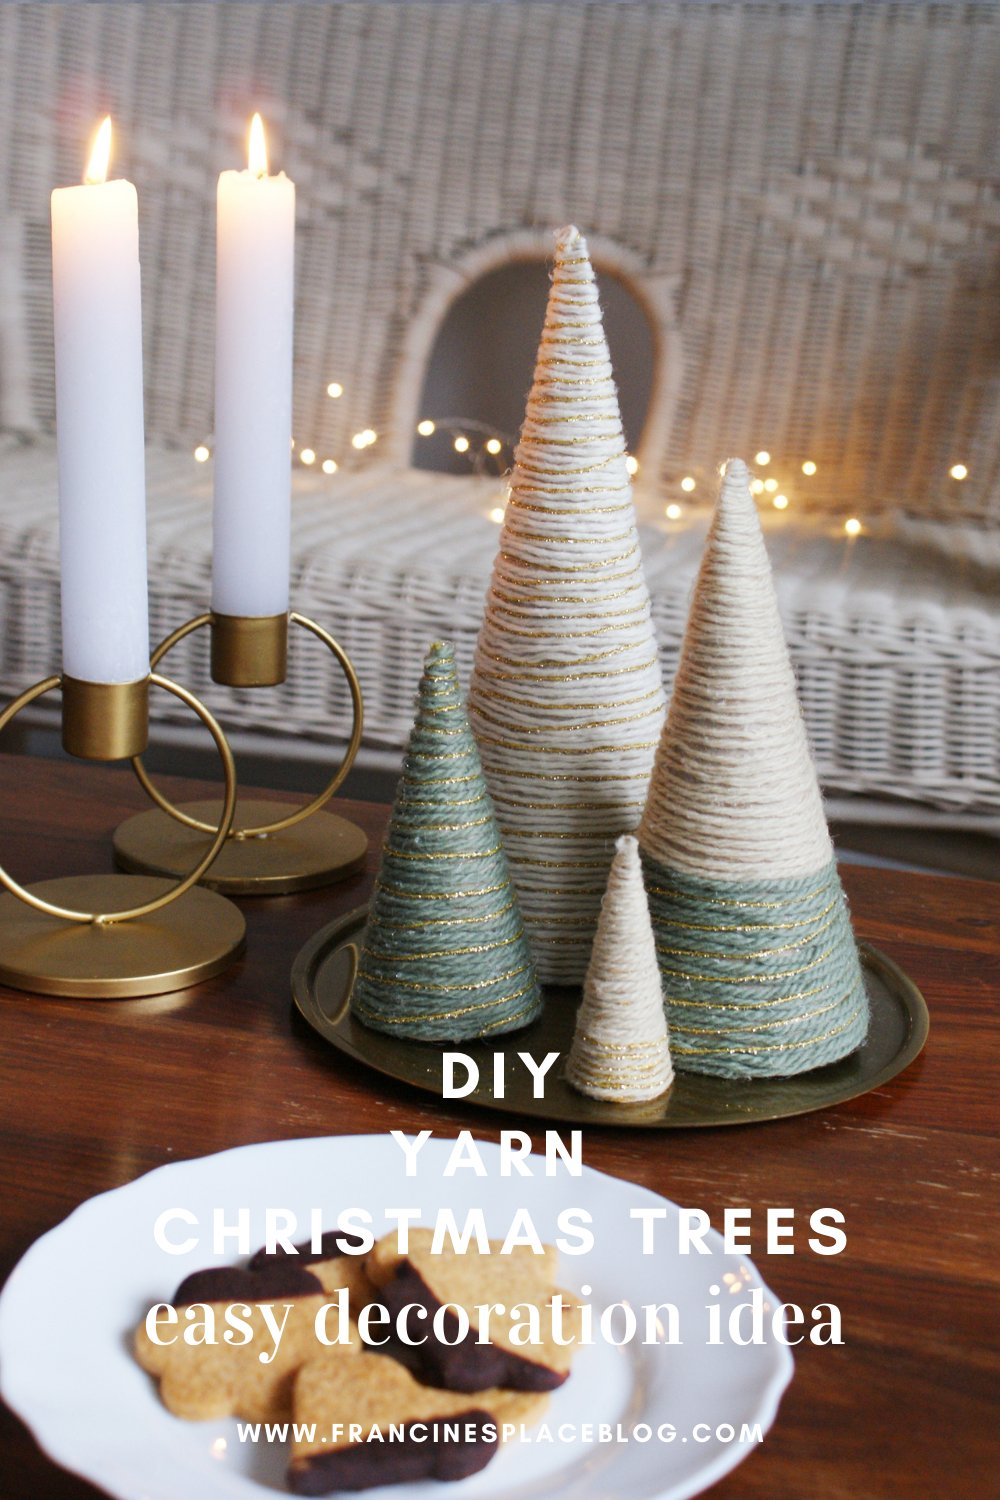 diy yarn christmas tree wool wrapped easy quick simple last minute decoration idea francinesplaceblog pinterest